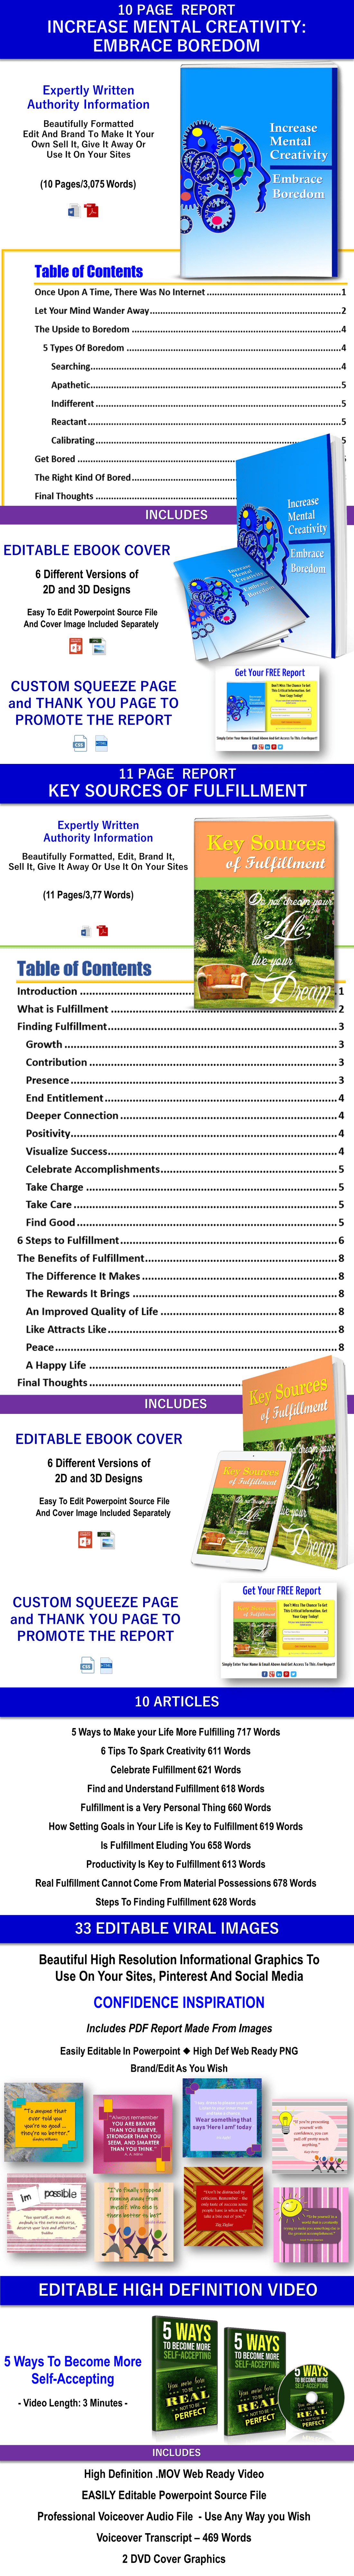 10 Part eCourse: Coping Strategies For 10 Key Issues People Face - PLR Rights